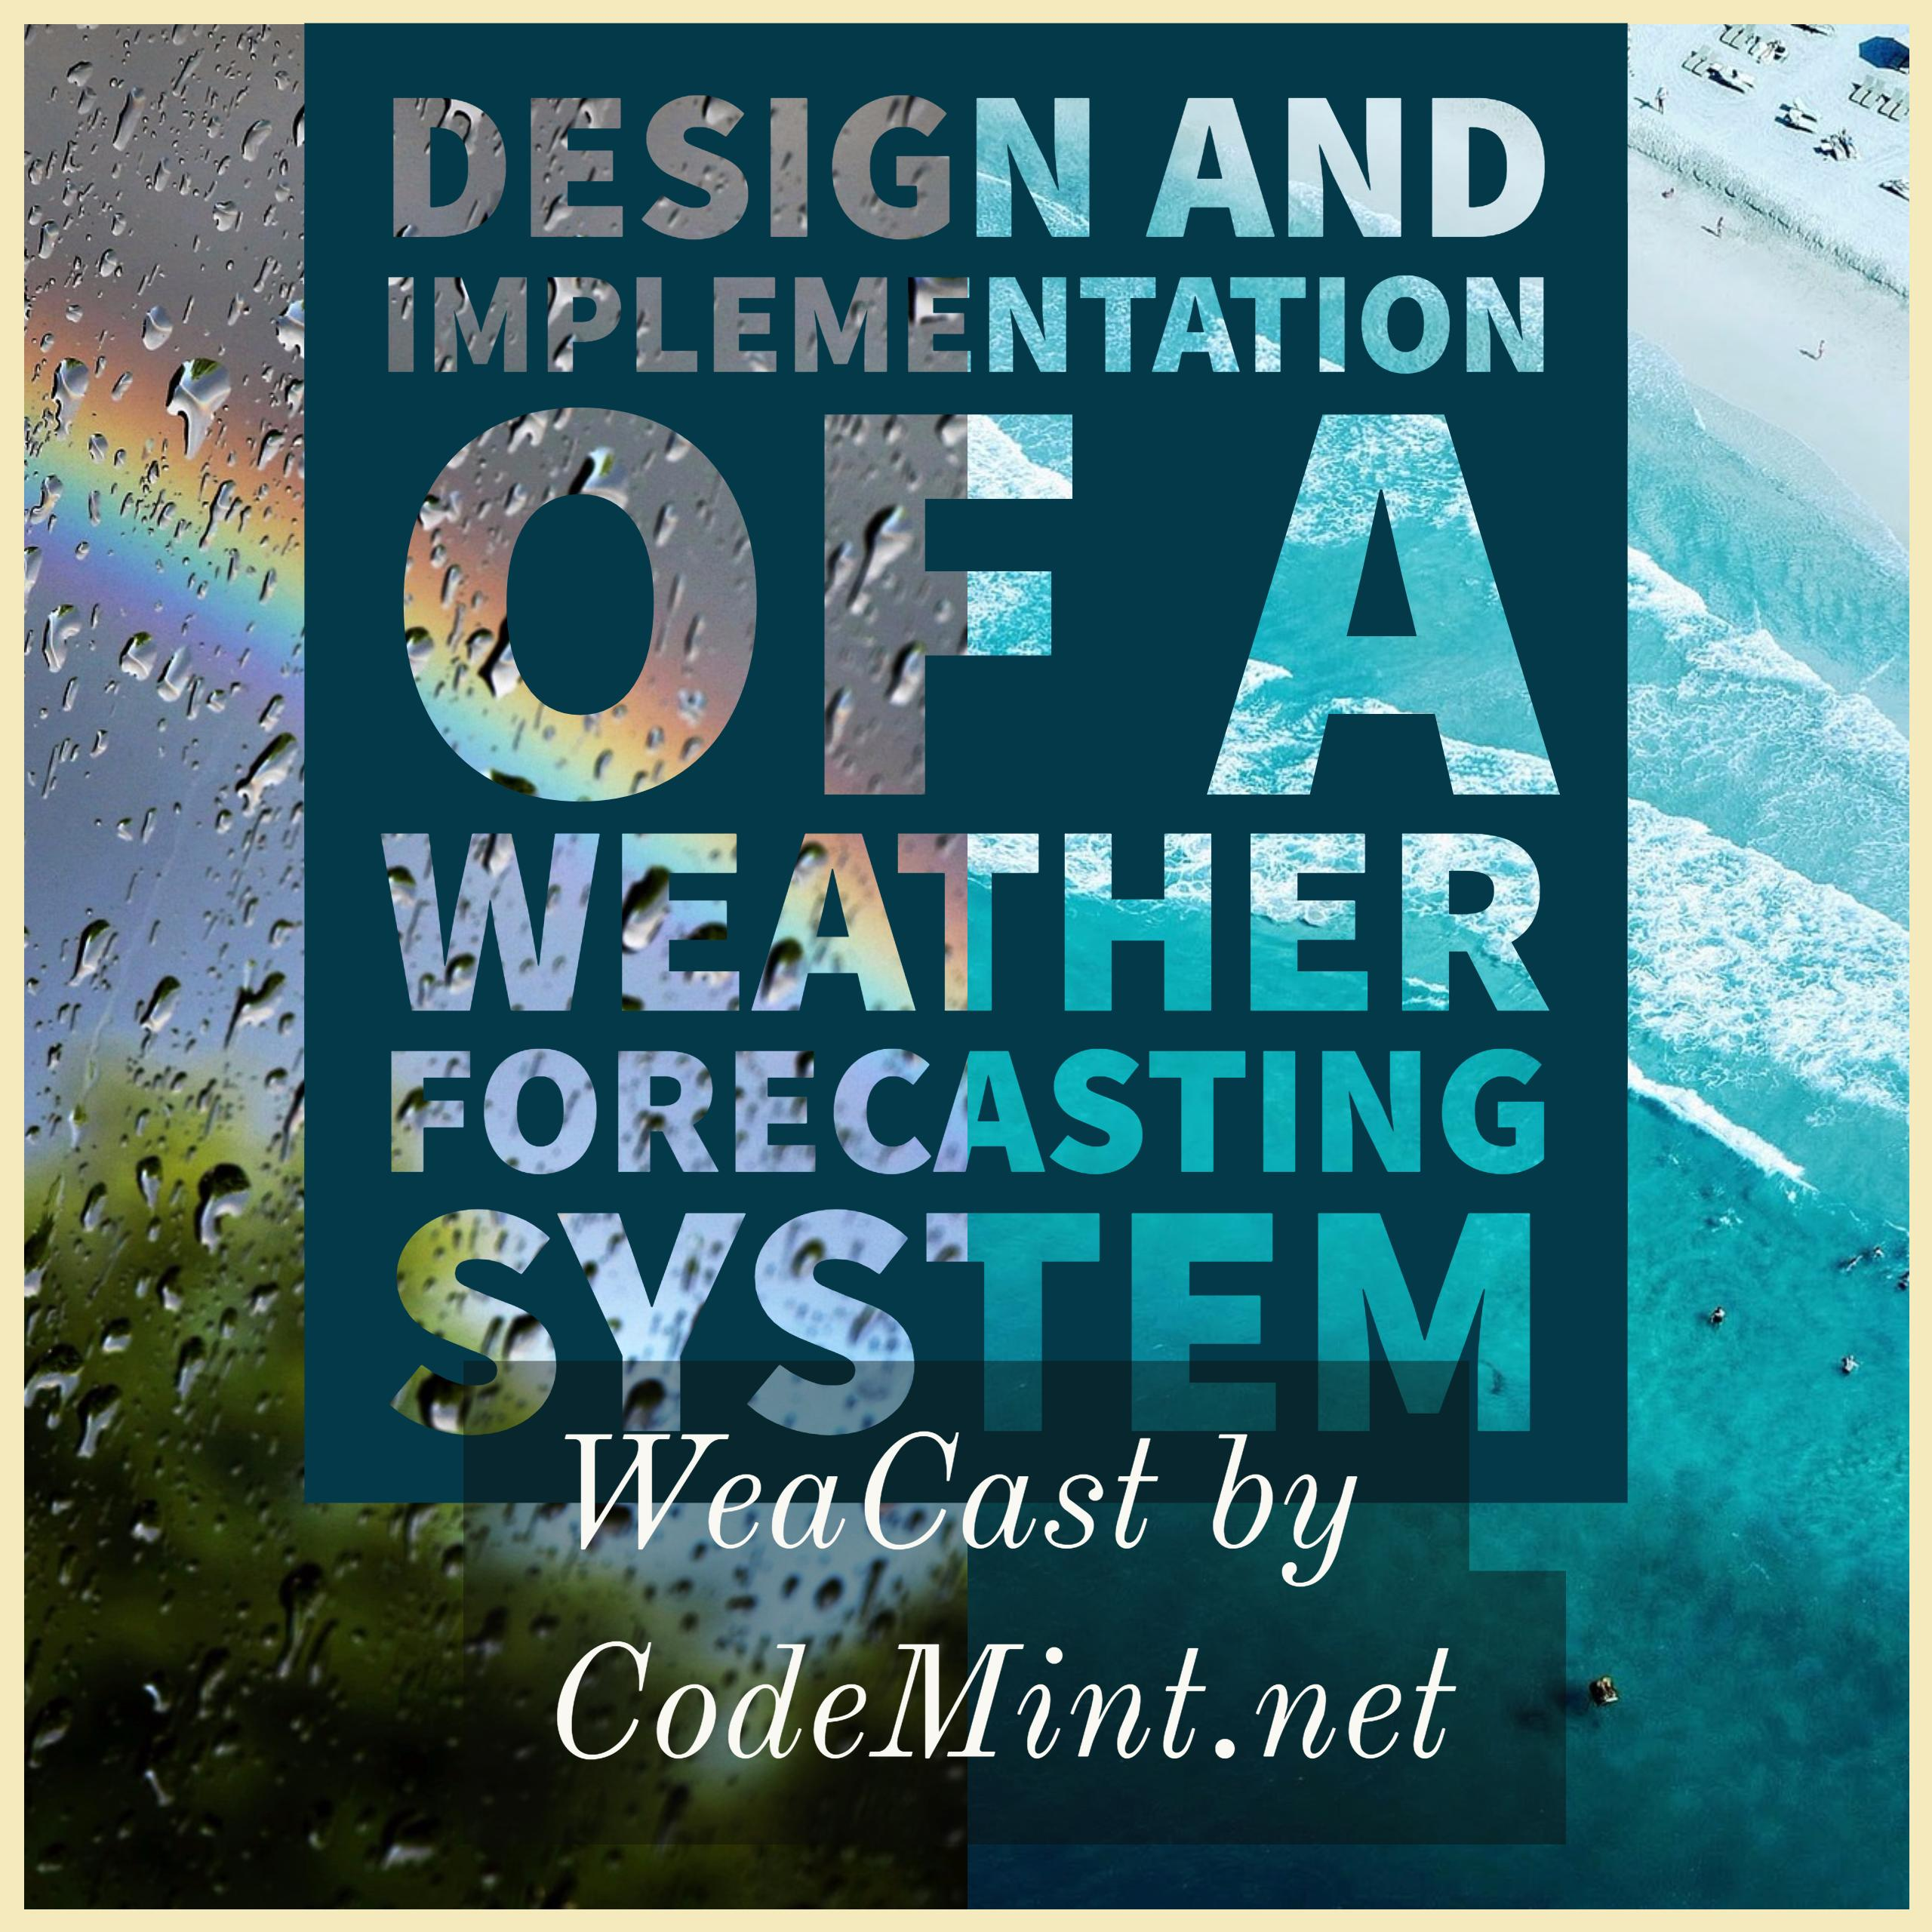 WeaCast - Design and Implementation of A Weather Forecasting System - CodeMint Mint for Sale